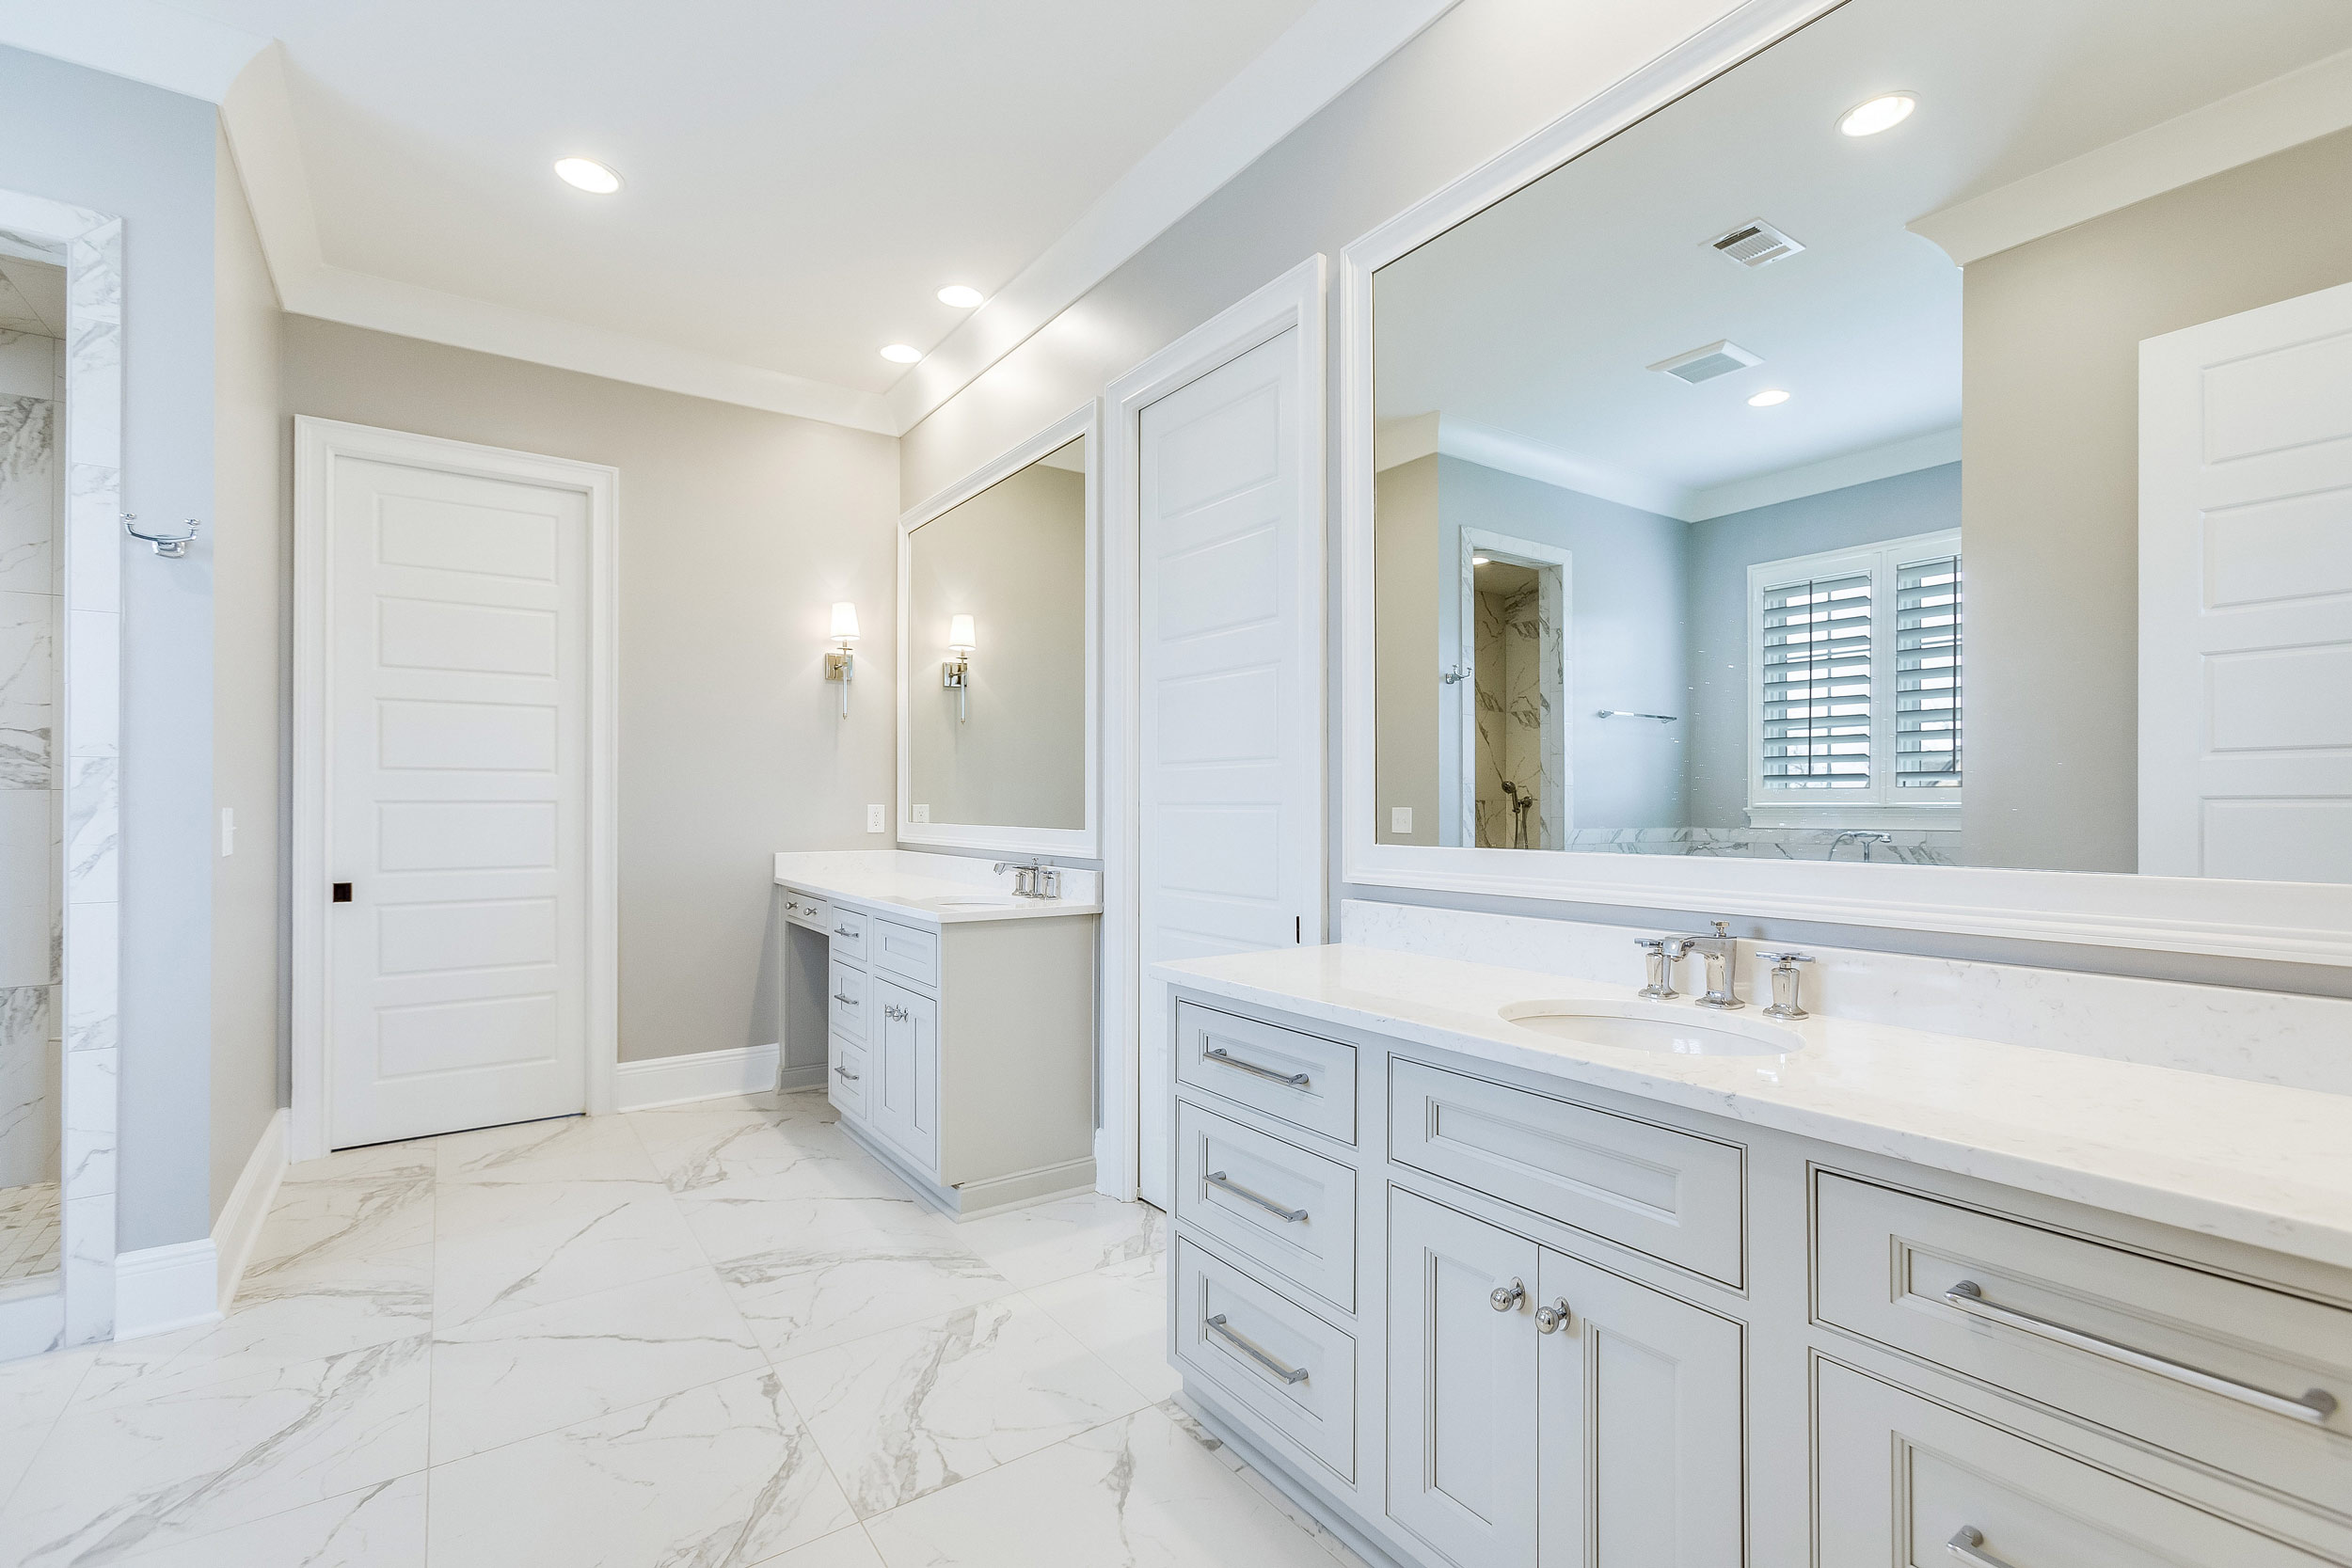 This elegant white bathroom was designed to have two vanities, a walk-in shower, and a freestanding tub.